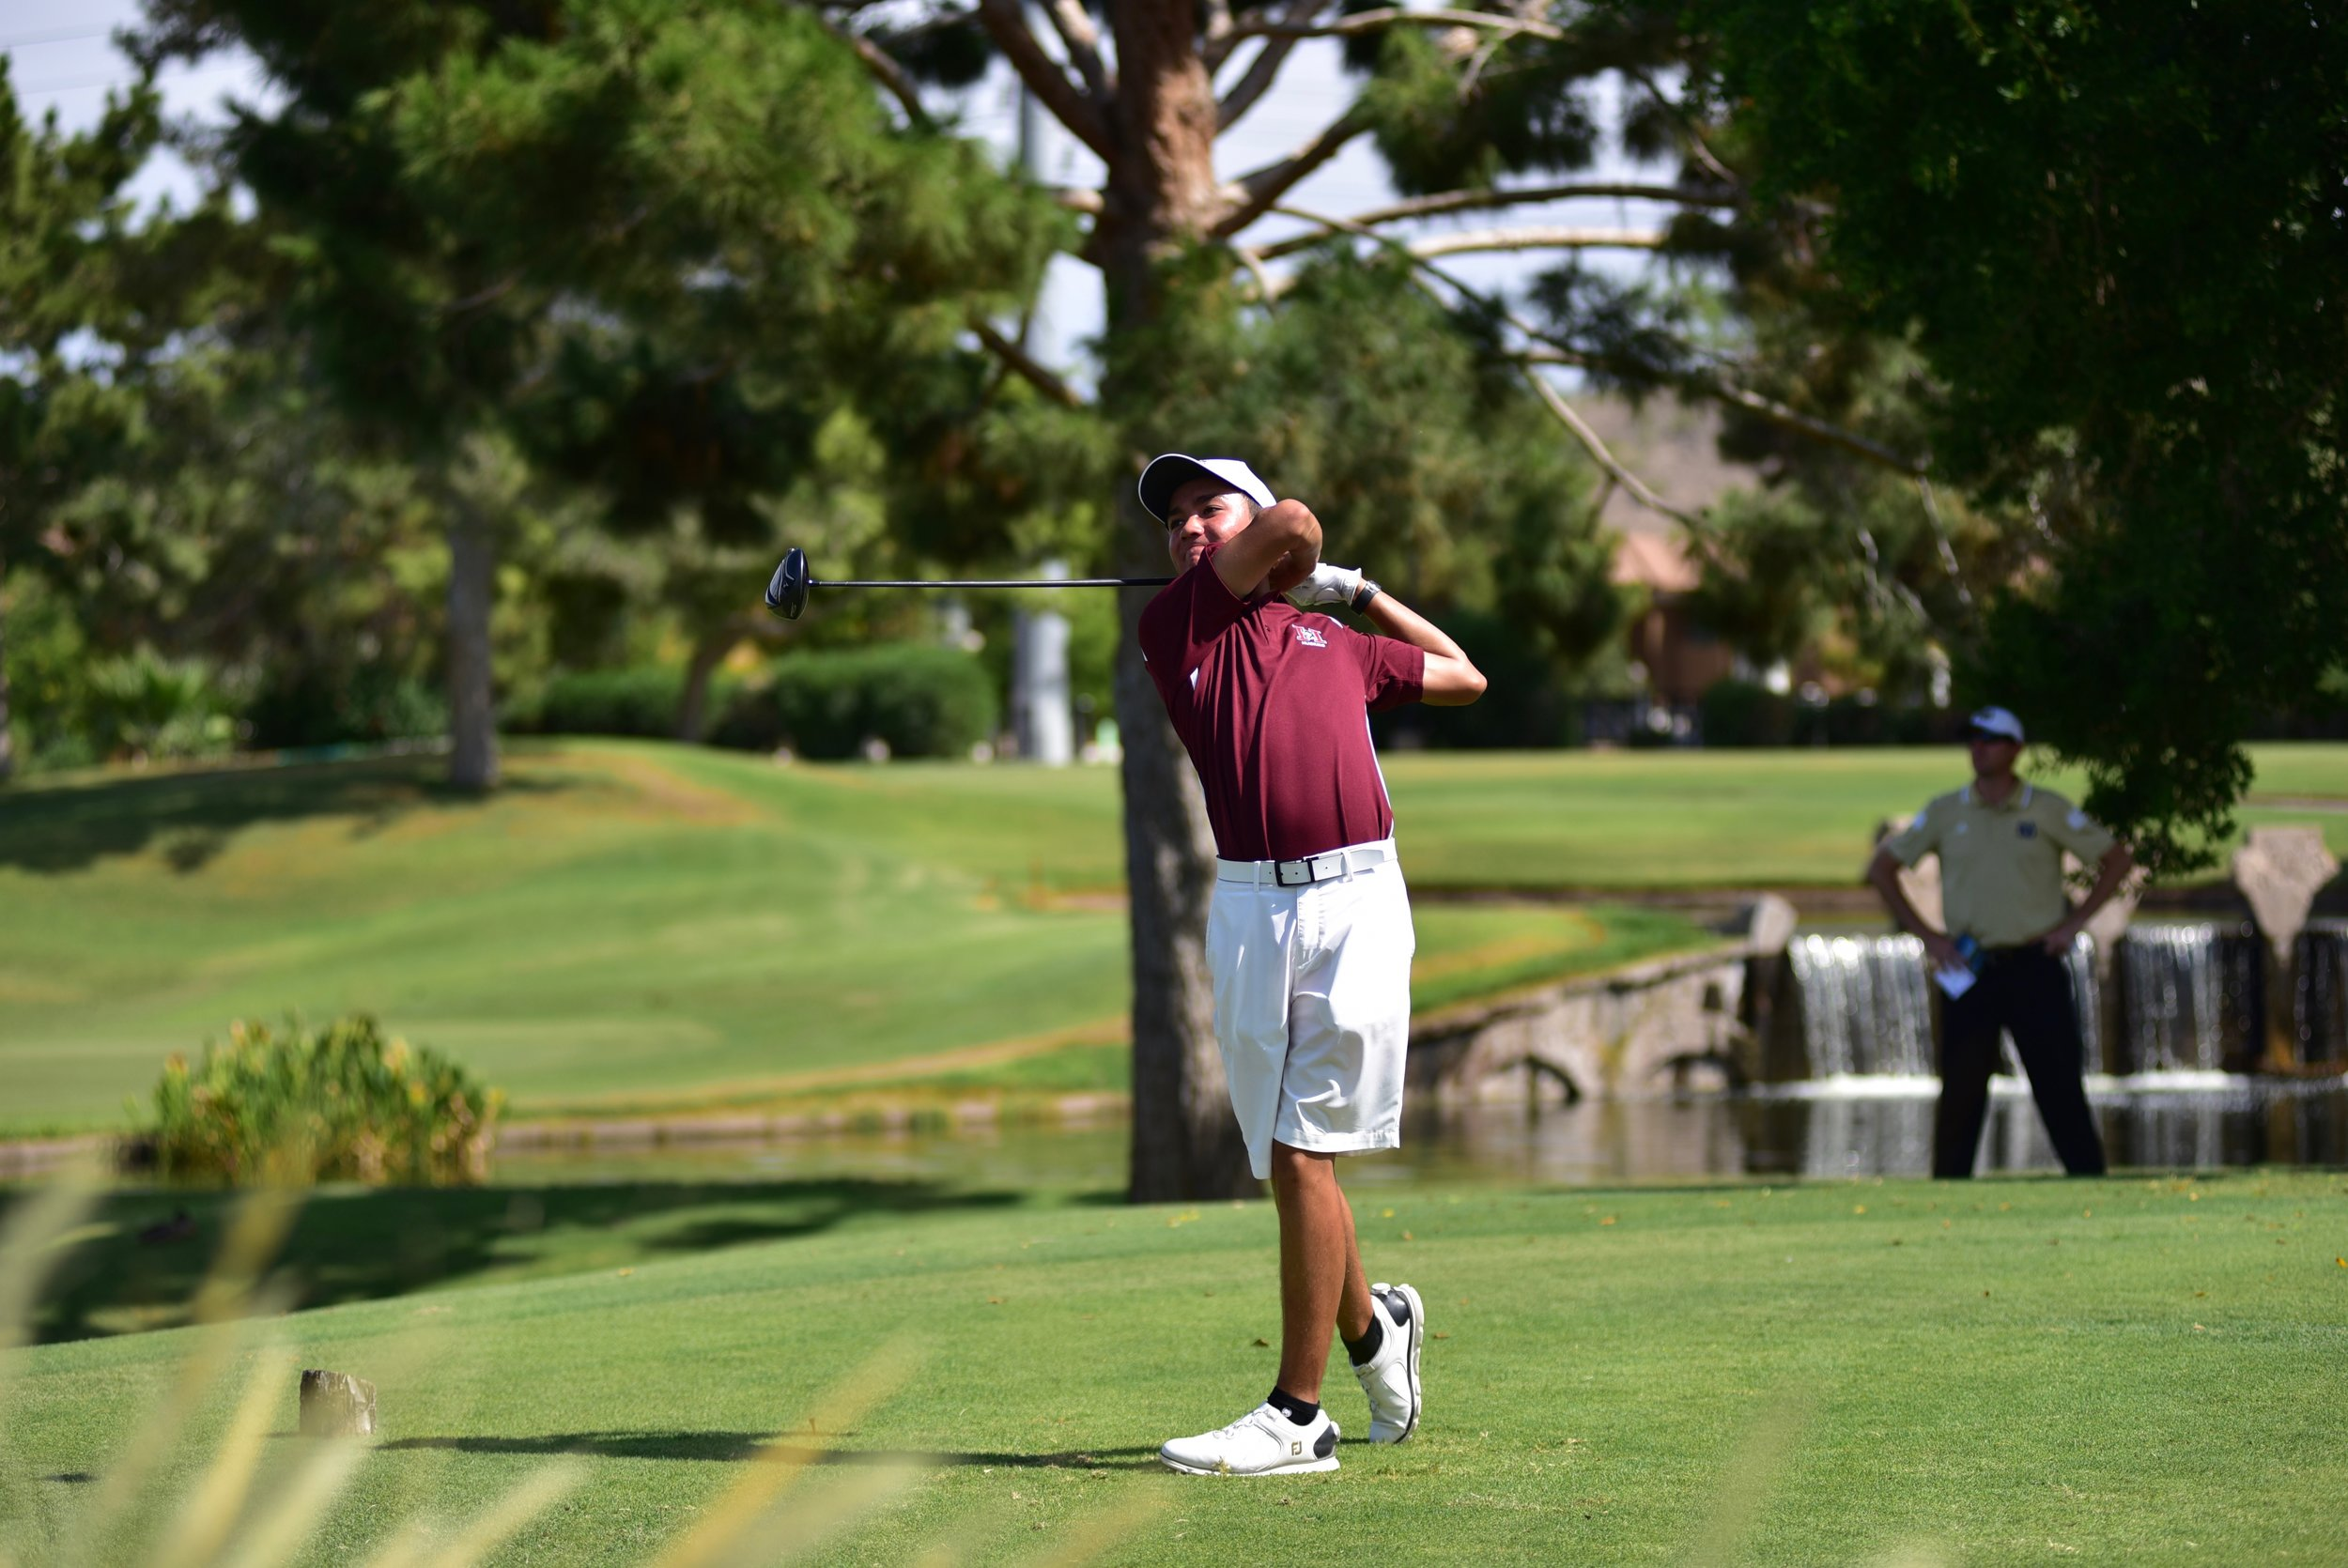 HHS sophomore Johnny Walker currently ranks no. 2 in Arizona after 3 weeks of league play.